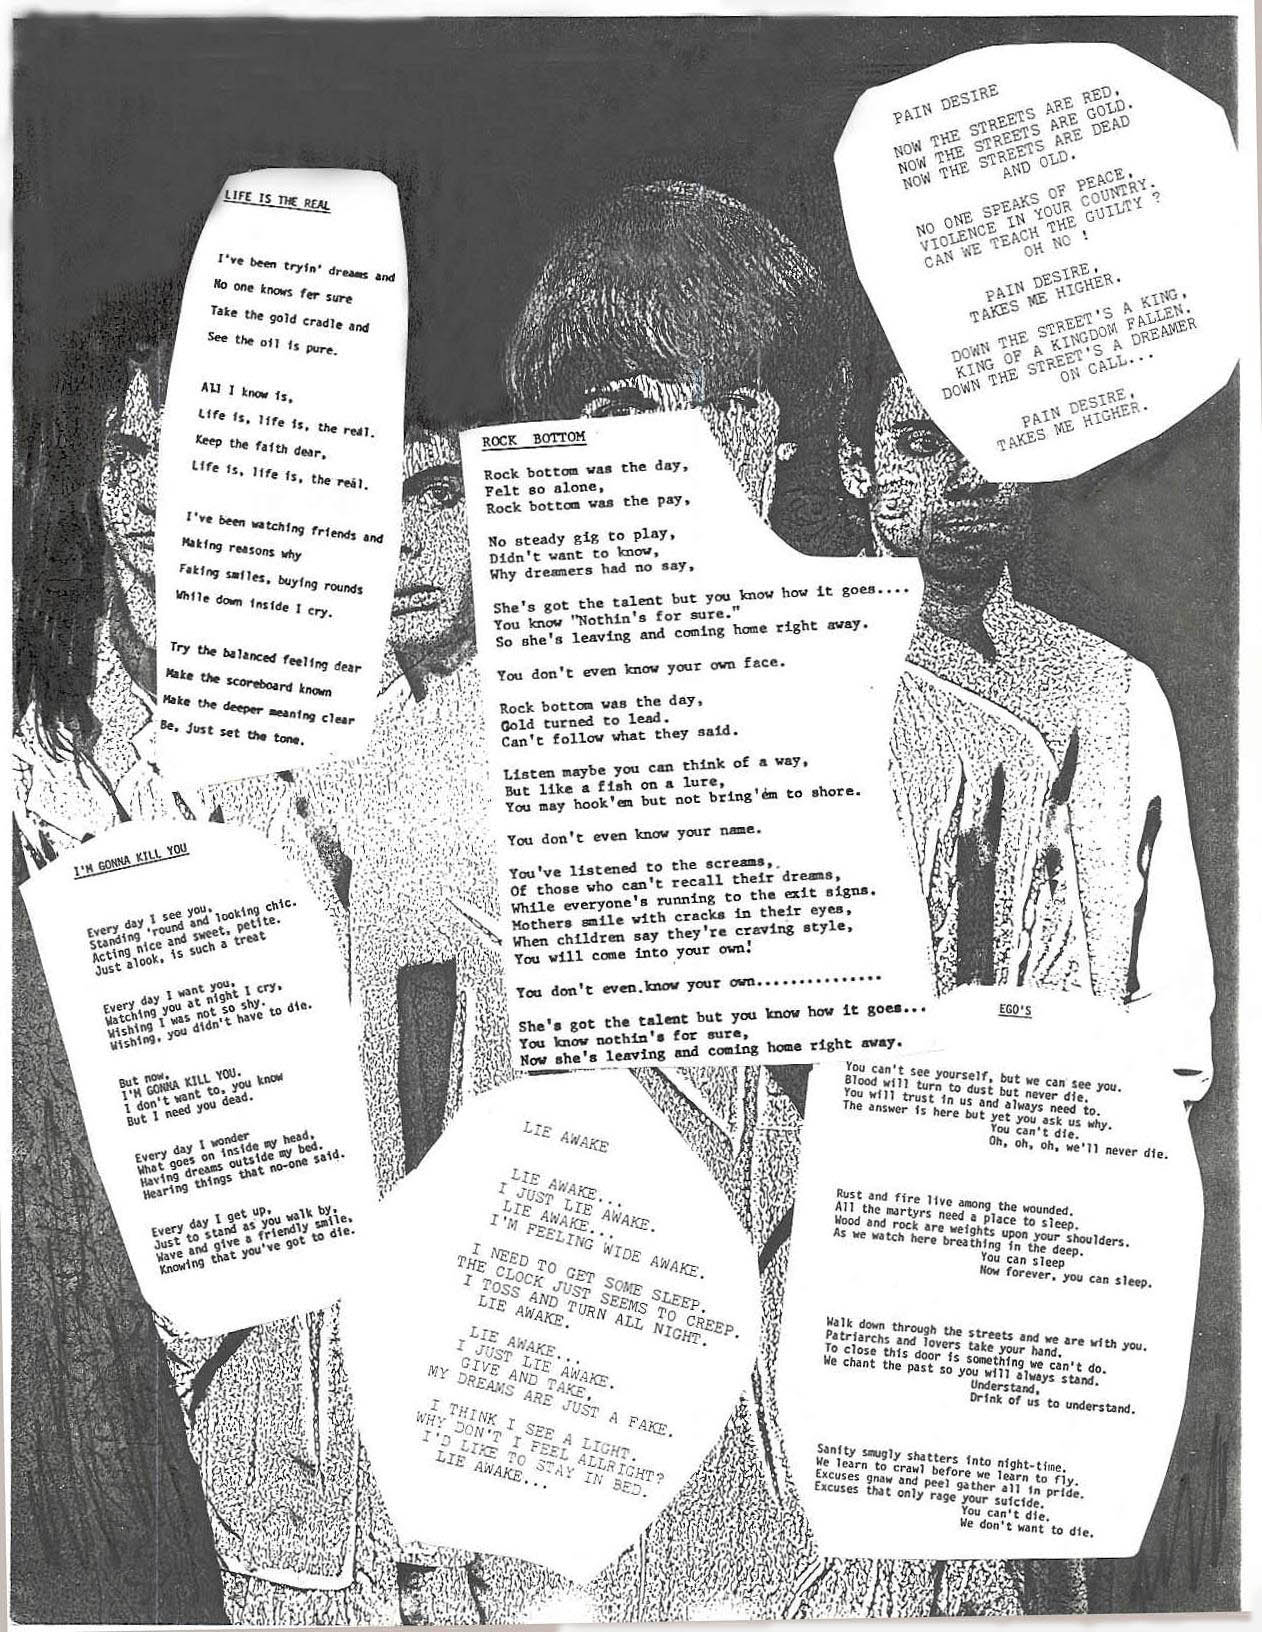 Lyric Sheet for Parousia Songs Recorded 1985 at Filippone Studios